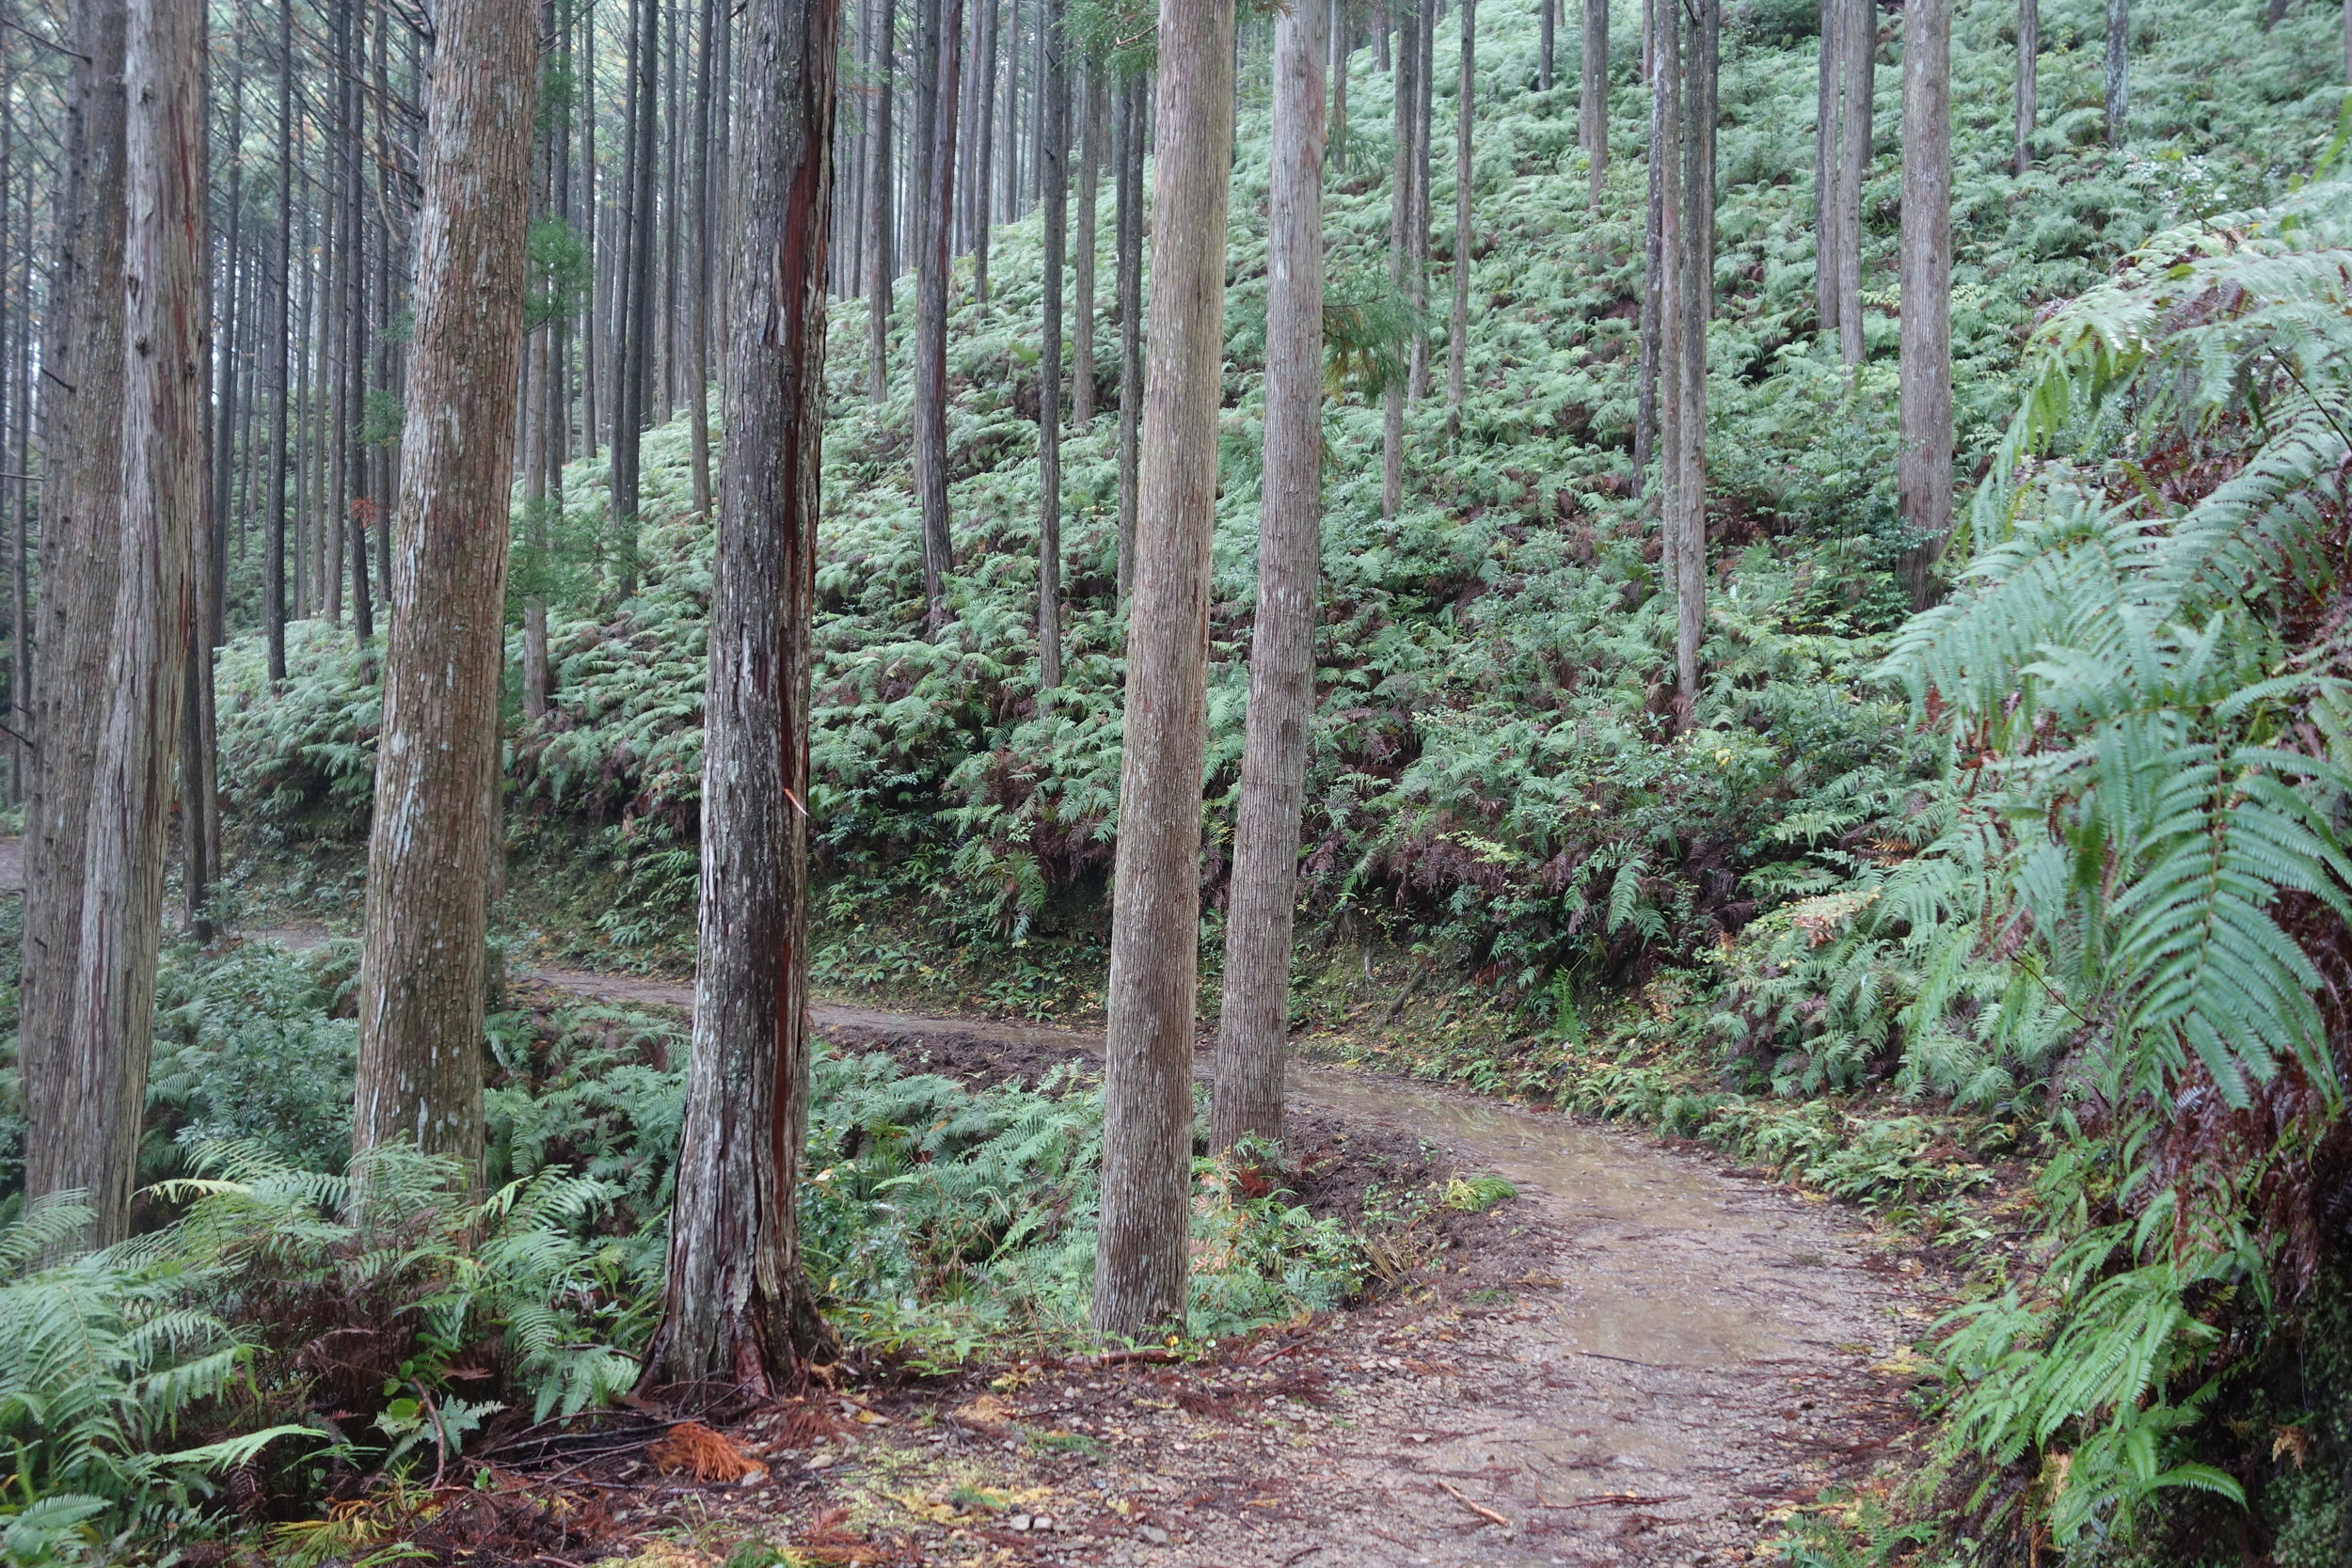 The Kumano Kodo is well-maintained, thanks to help from many volunteers.